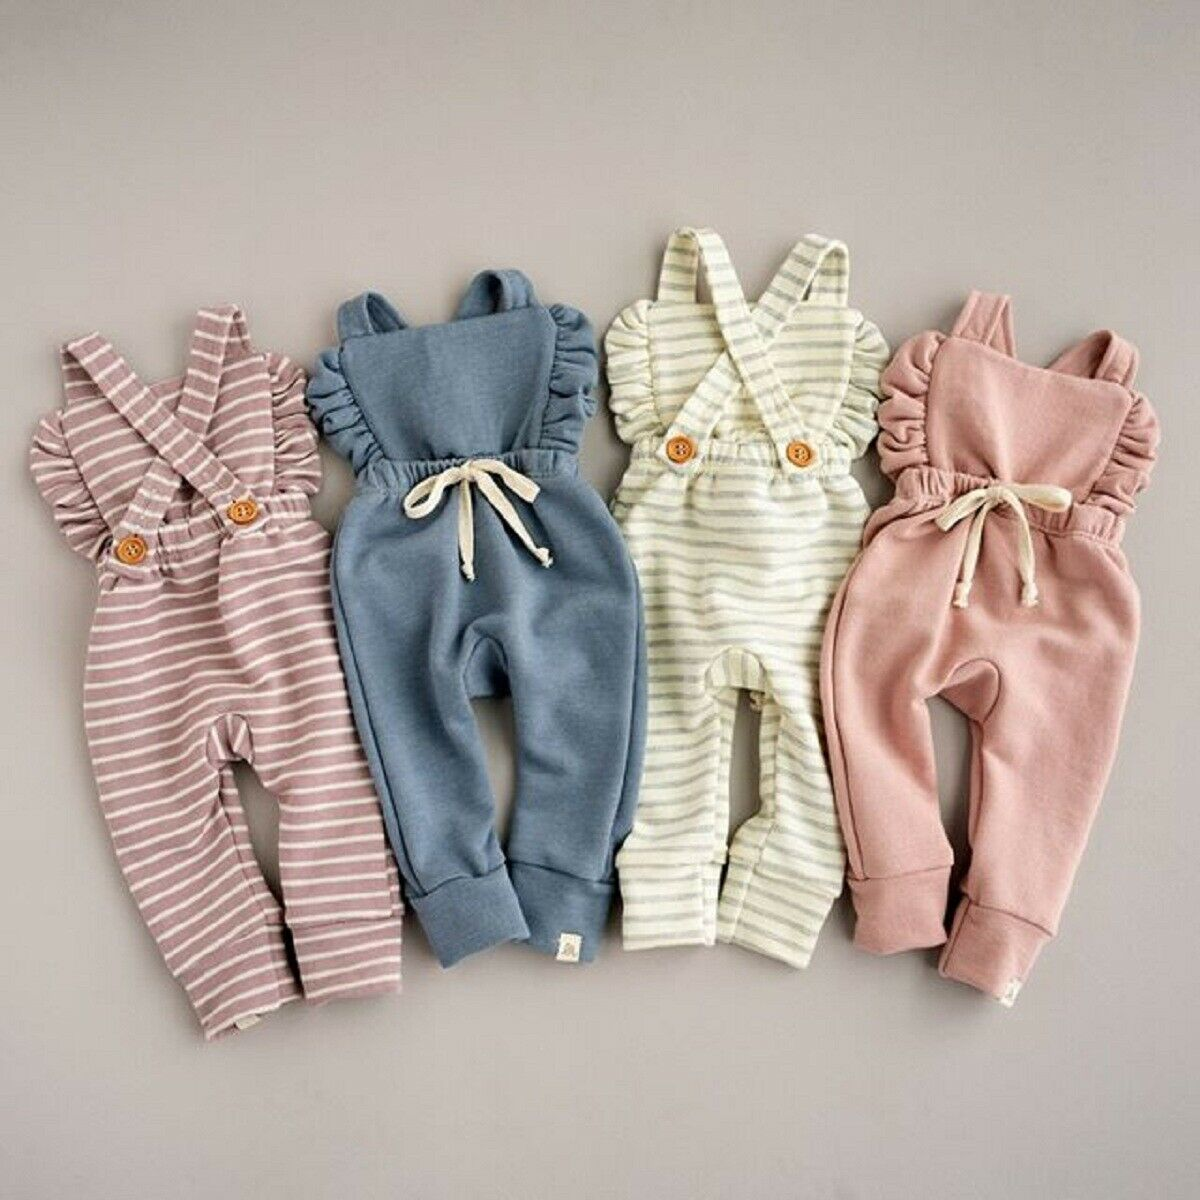 Pudcoco Baby Summer Clothing Toddler Kid Baby Girl Ruffle Bib Pants Romper Overalls Cotton Outfits Solid Backless Clothes 0-3T